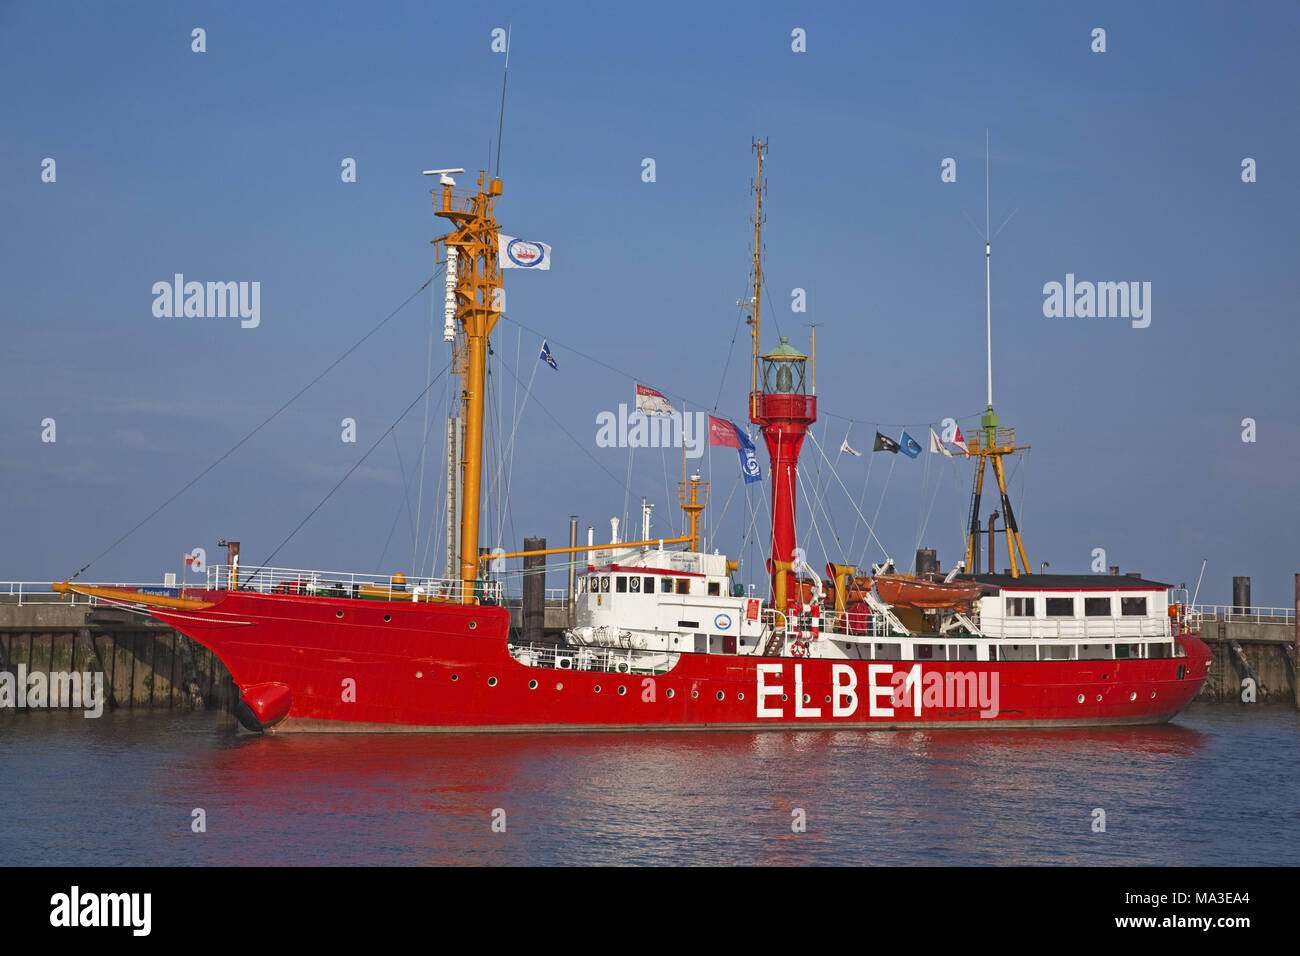 Lightship 'Elbe 1' at 'Alte Liebe' Cuxhaven, Lower Saxony, Germany, Europe, - Stock Image